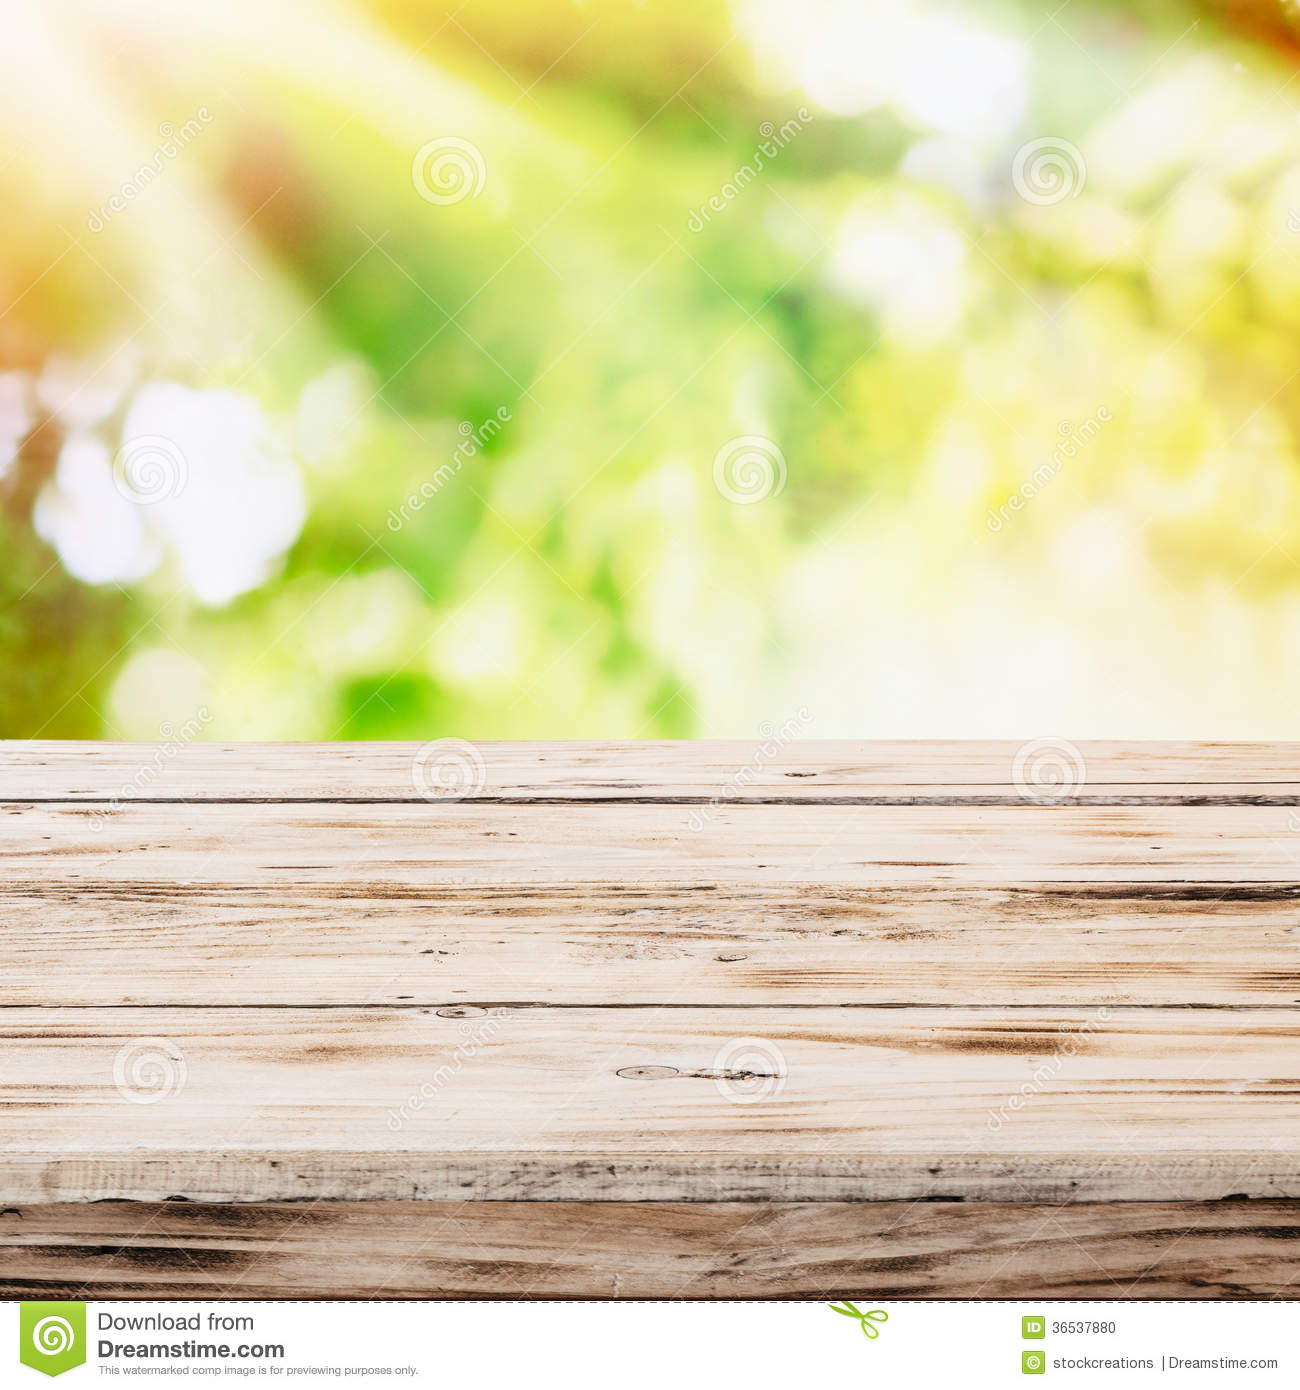 Wood Table Top On Blurred Beach Background Vintage Tone: Empty Rustic Wooden Table With Golden Sunlight Stock Photo